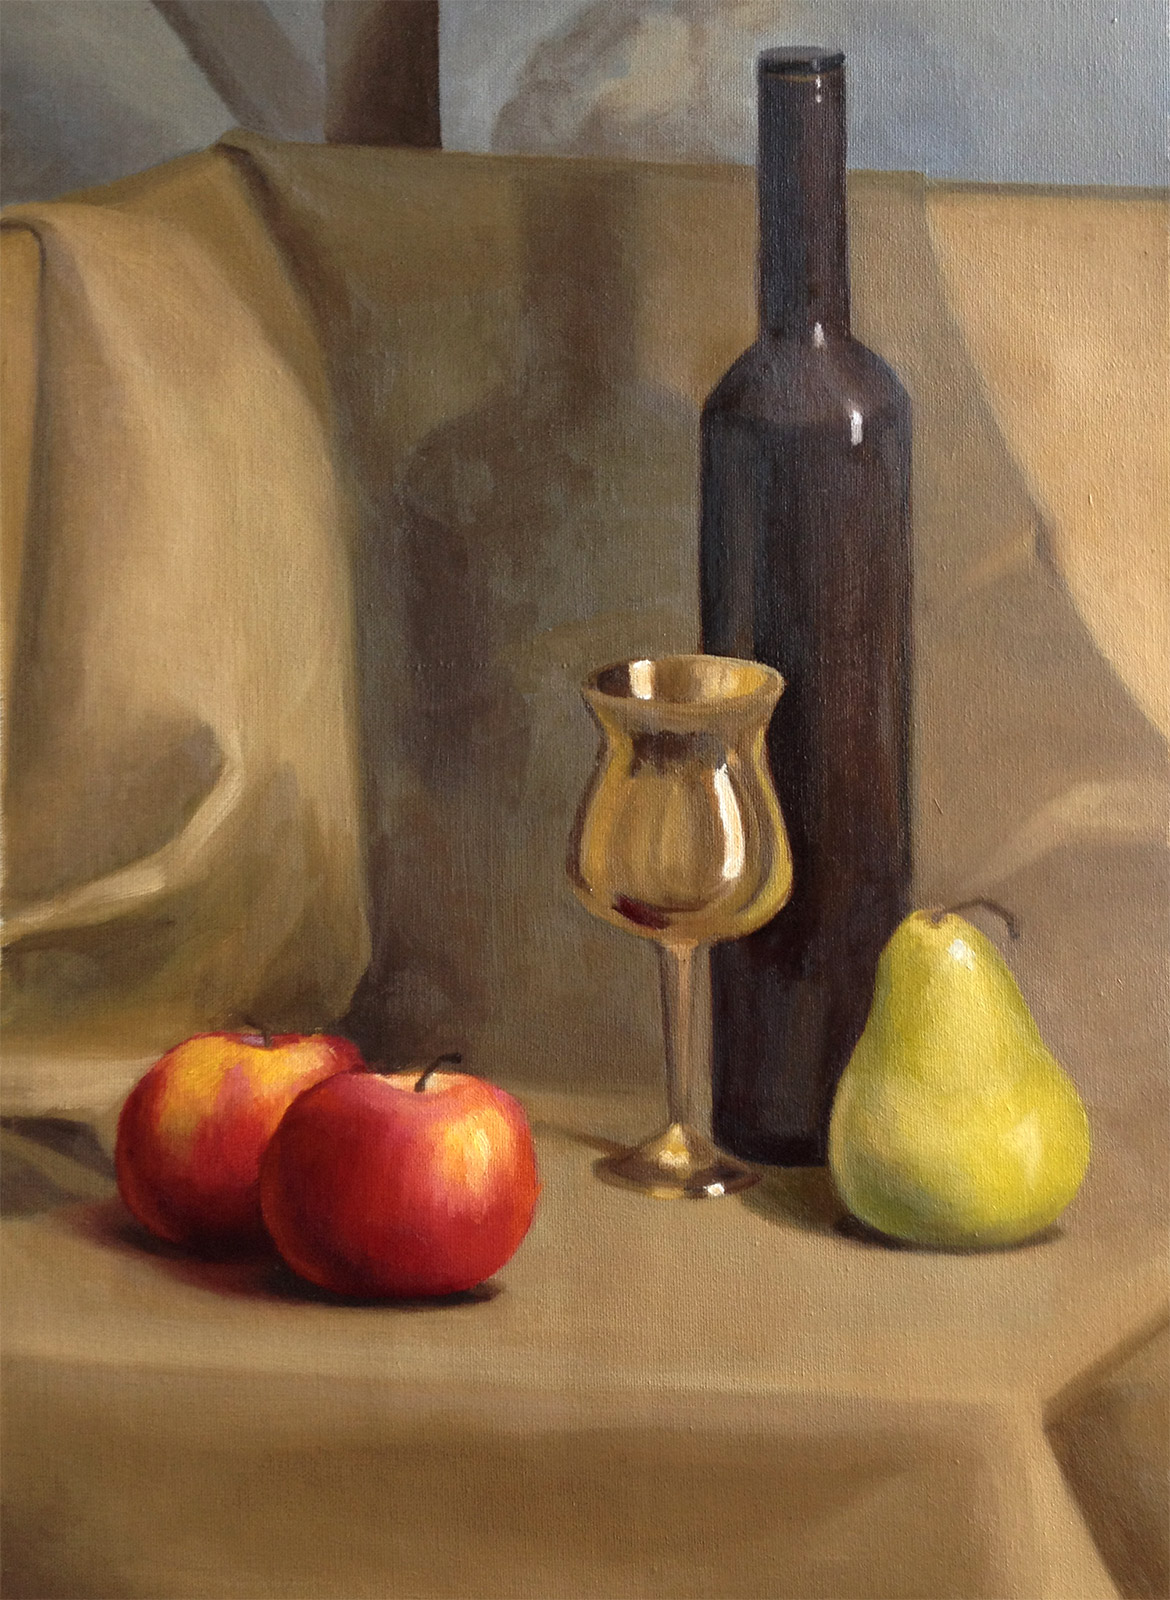 Red and gold still life by Tatyana Deniz, oil on canvas, 2014